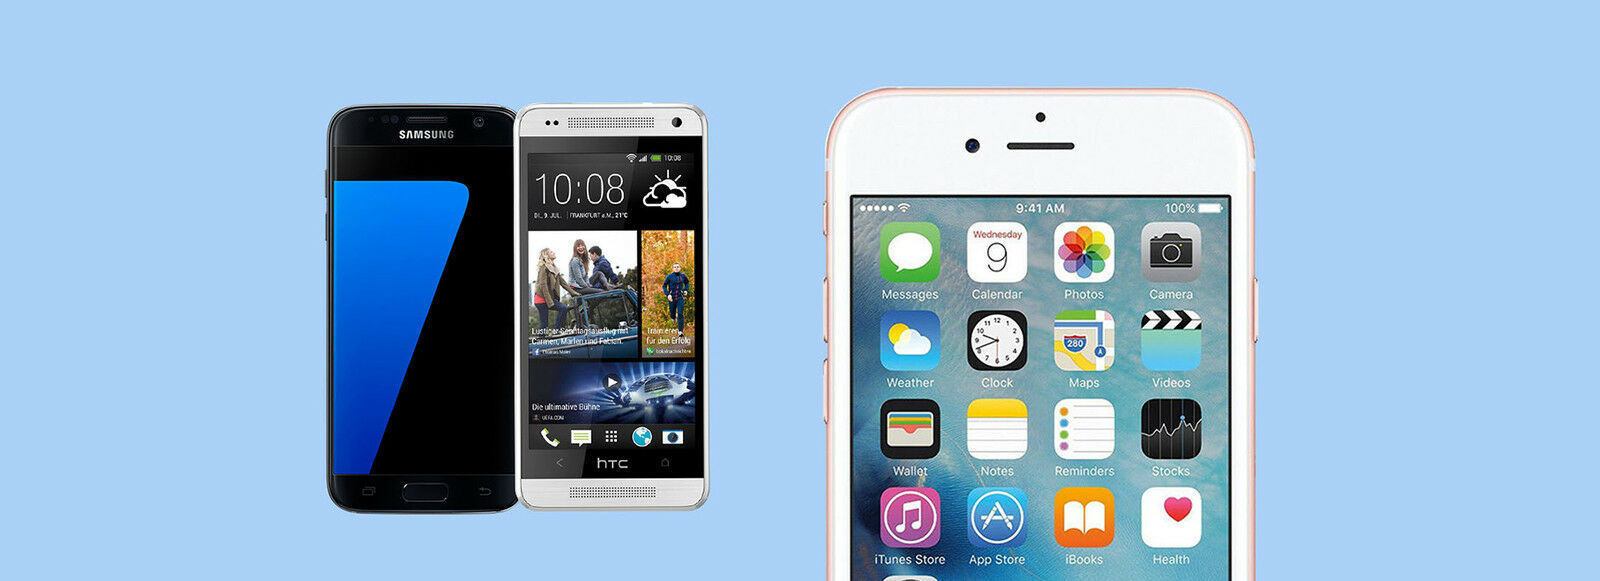 Save up to 35% with refurb smartphones.